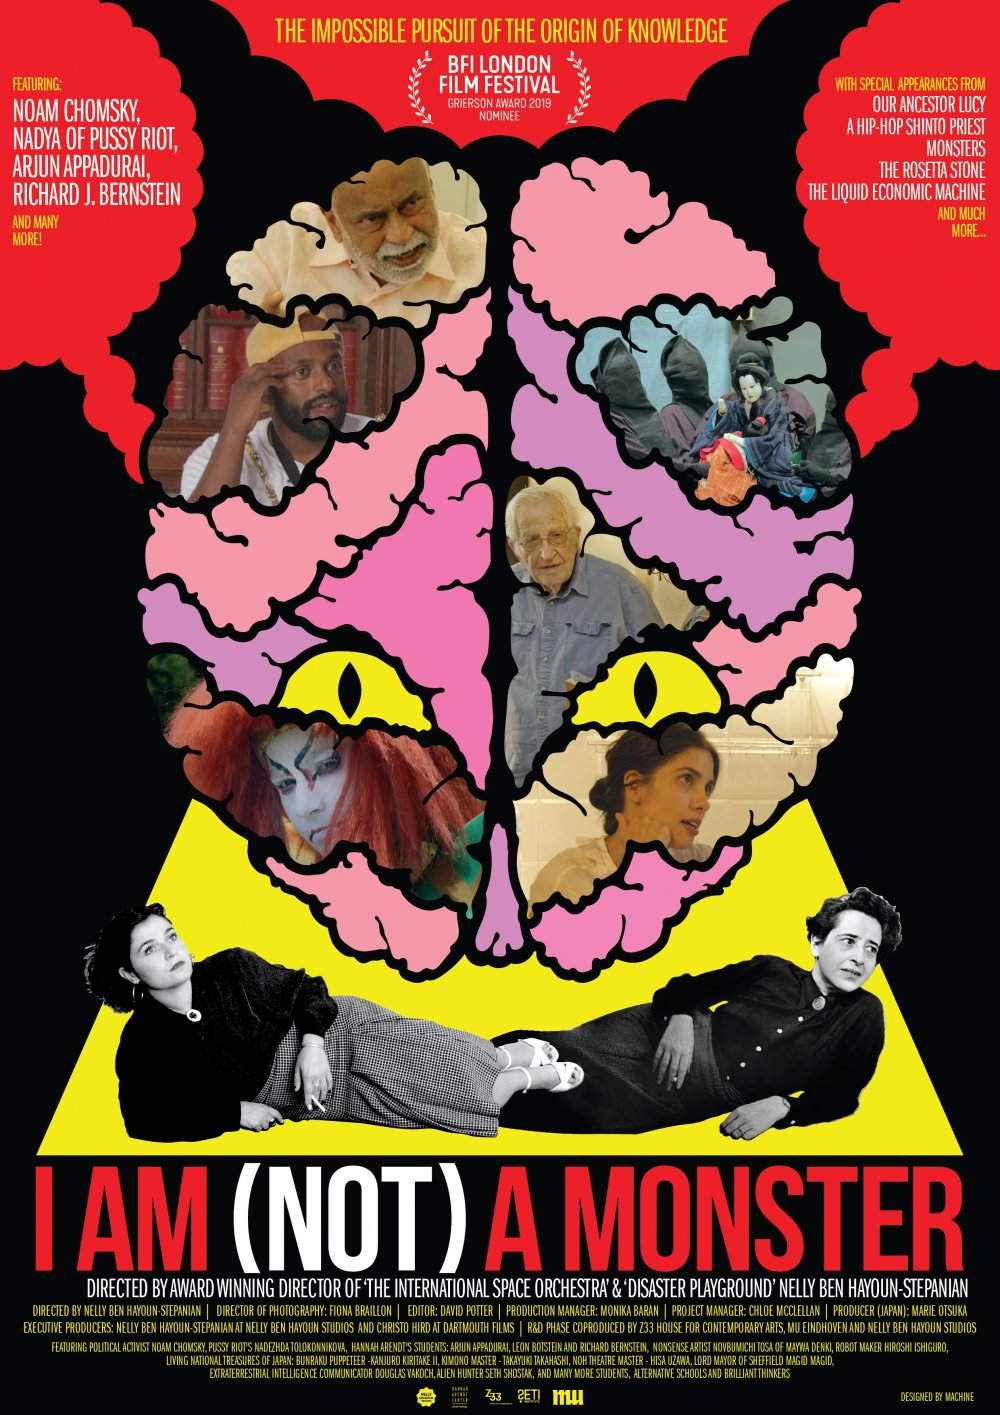 <strong>I Am (Not) a Monster</strong>  In this thought-provoking and playful documentary, ebullient director Nelly Ben Hayoun-Stépanian (Disaster Playground) takes you on a journey to find the origins of knowledge